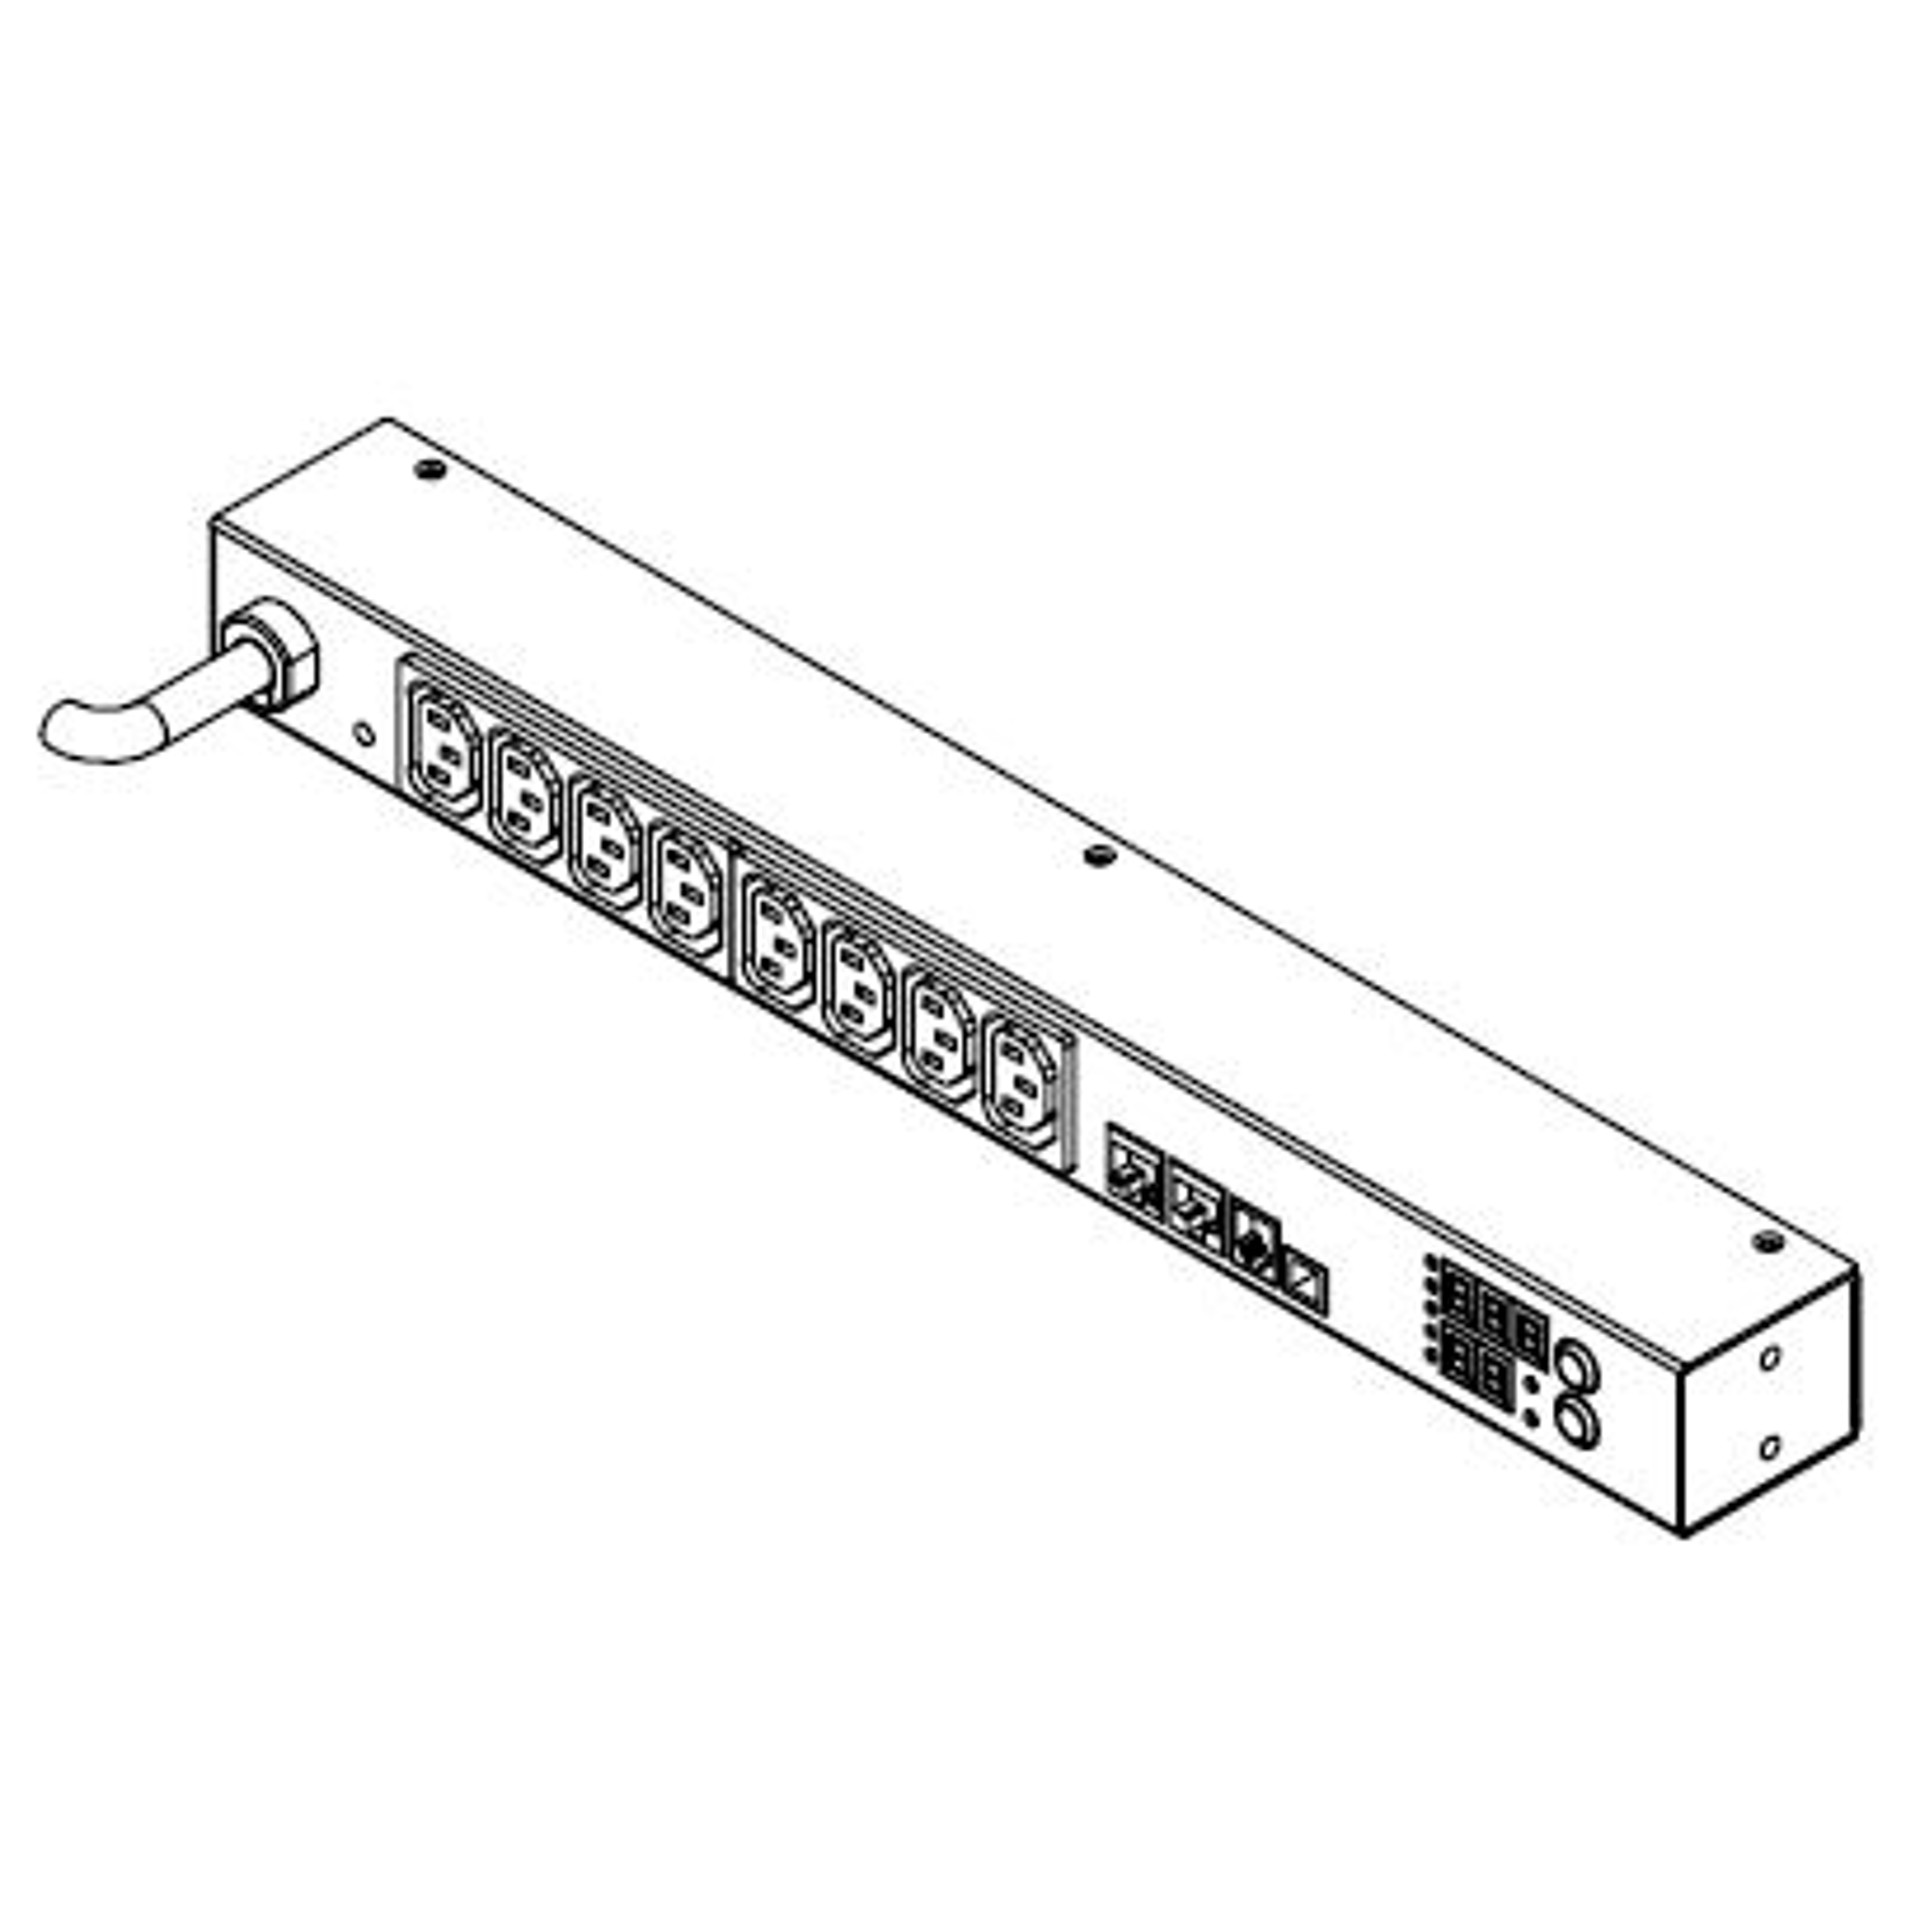 Pxe R Raritan Intelligente 16a Ip Rack Pdu Mit 8